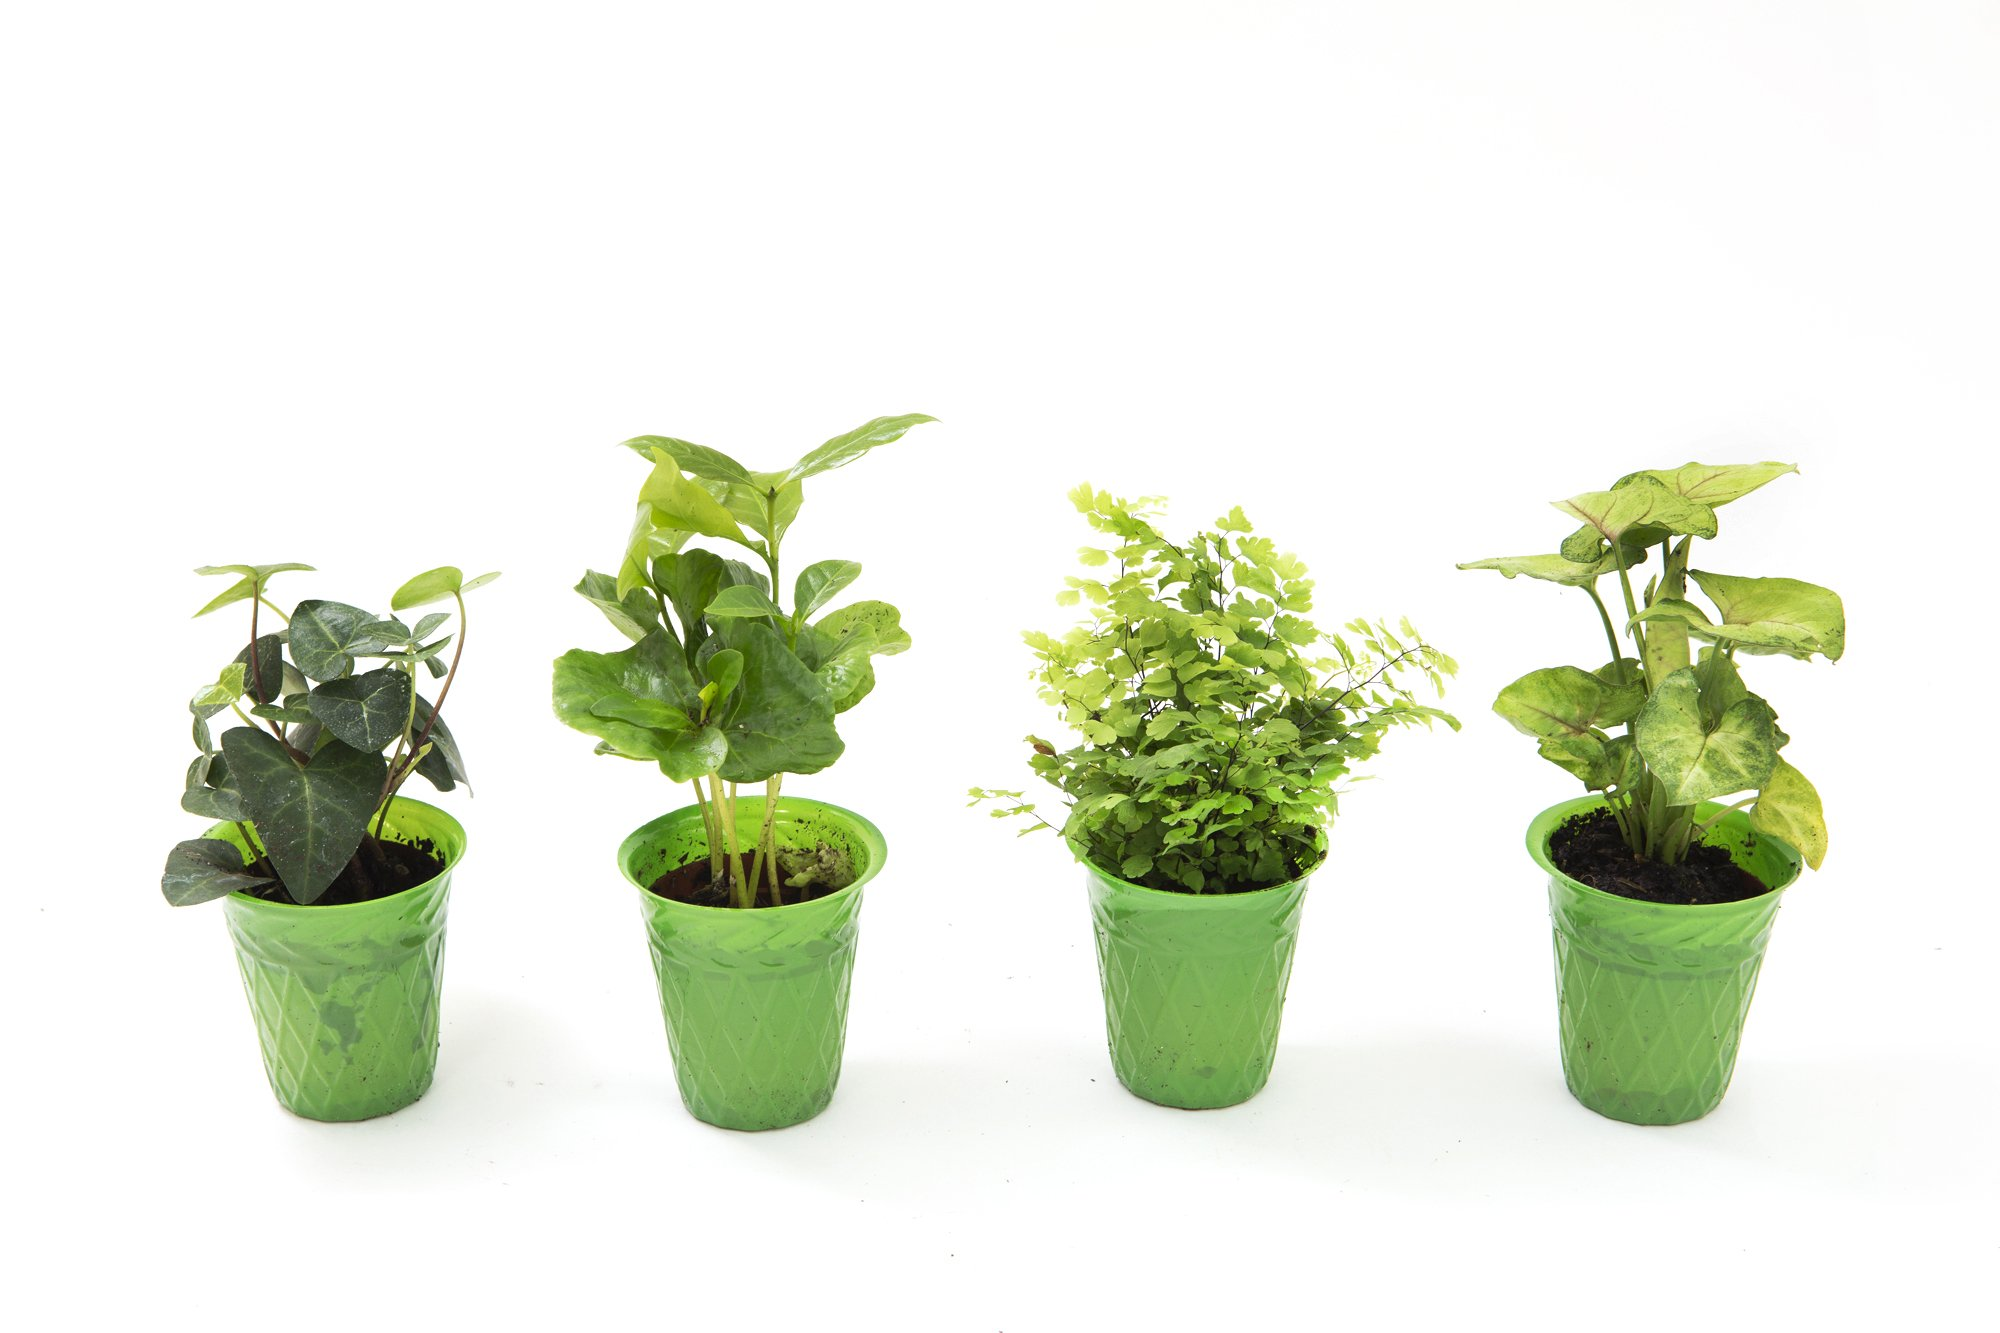 KaBloom Live Plant Collection: Set of 4 Foliage Plants in a 3-inch Green Plastic Pot - Ivy, Coffee Plant, Fern, & Nephthytis Plant by KaBloom (Image #1)